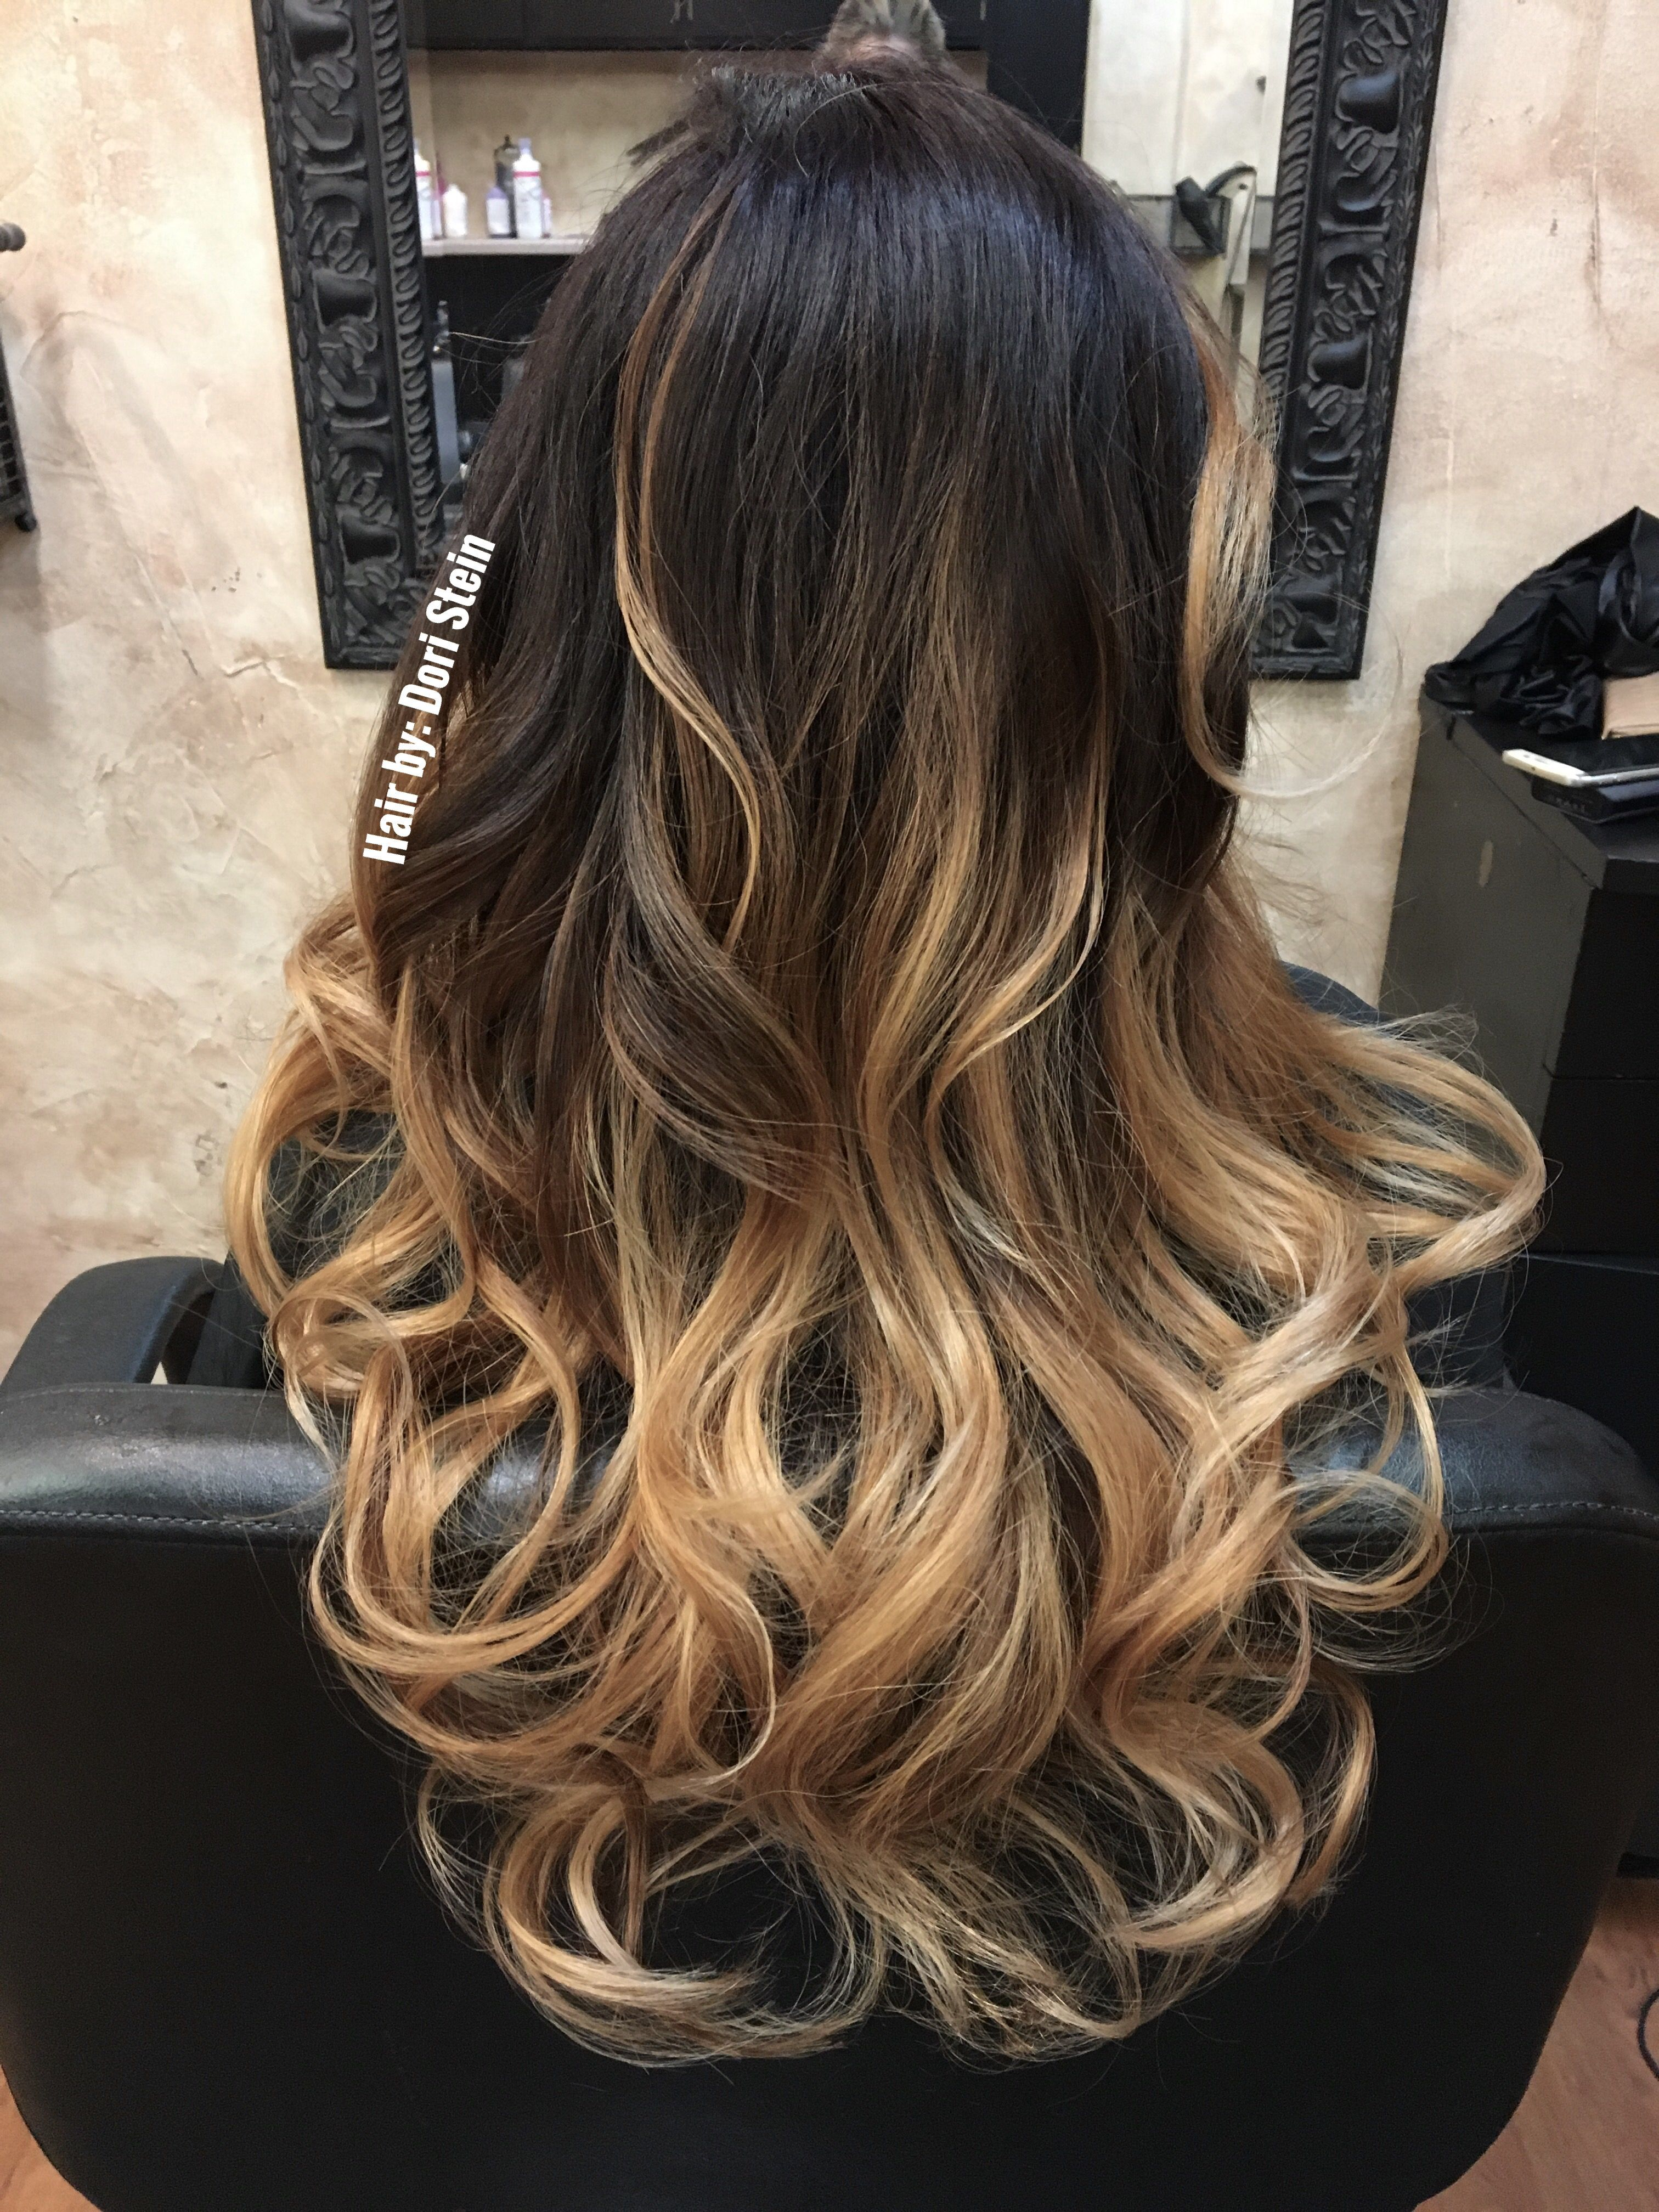 Pin By Lizzy H On Hair Dyeing Inspo Brown To Blonde Balayage Blonde Hair Tips Ombre Hair Blonde